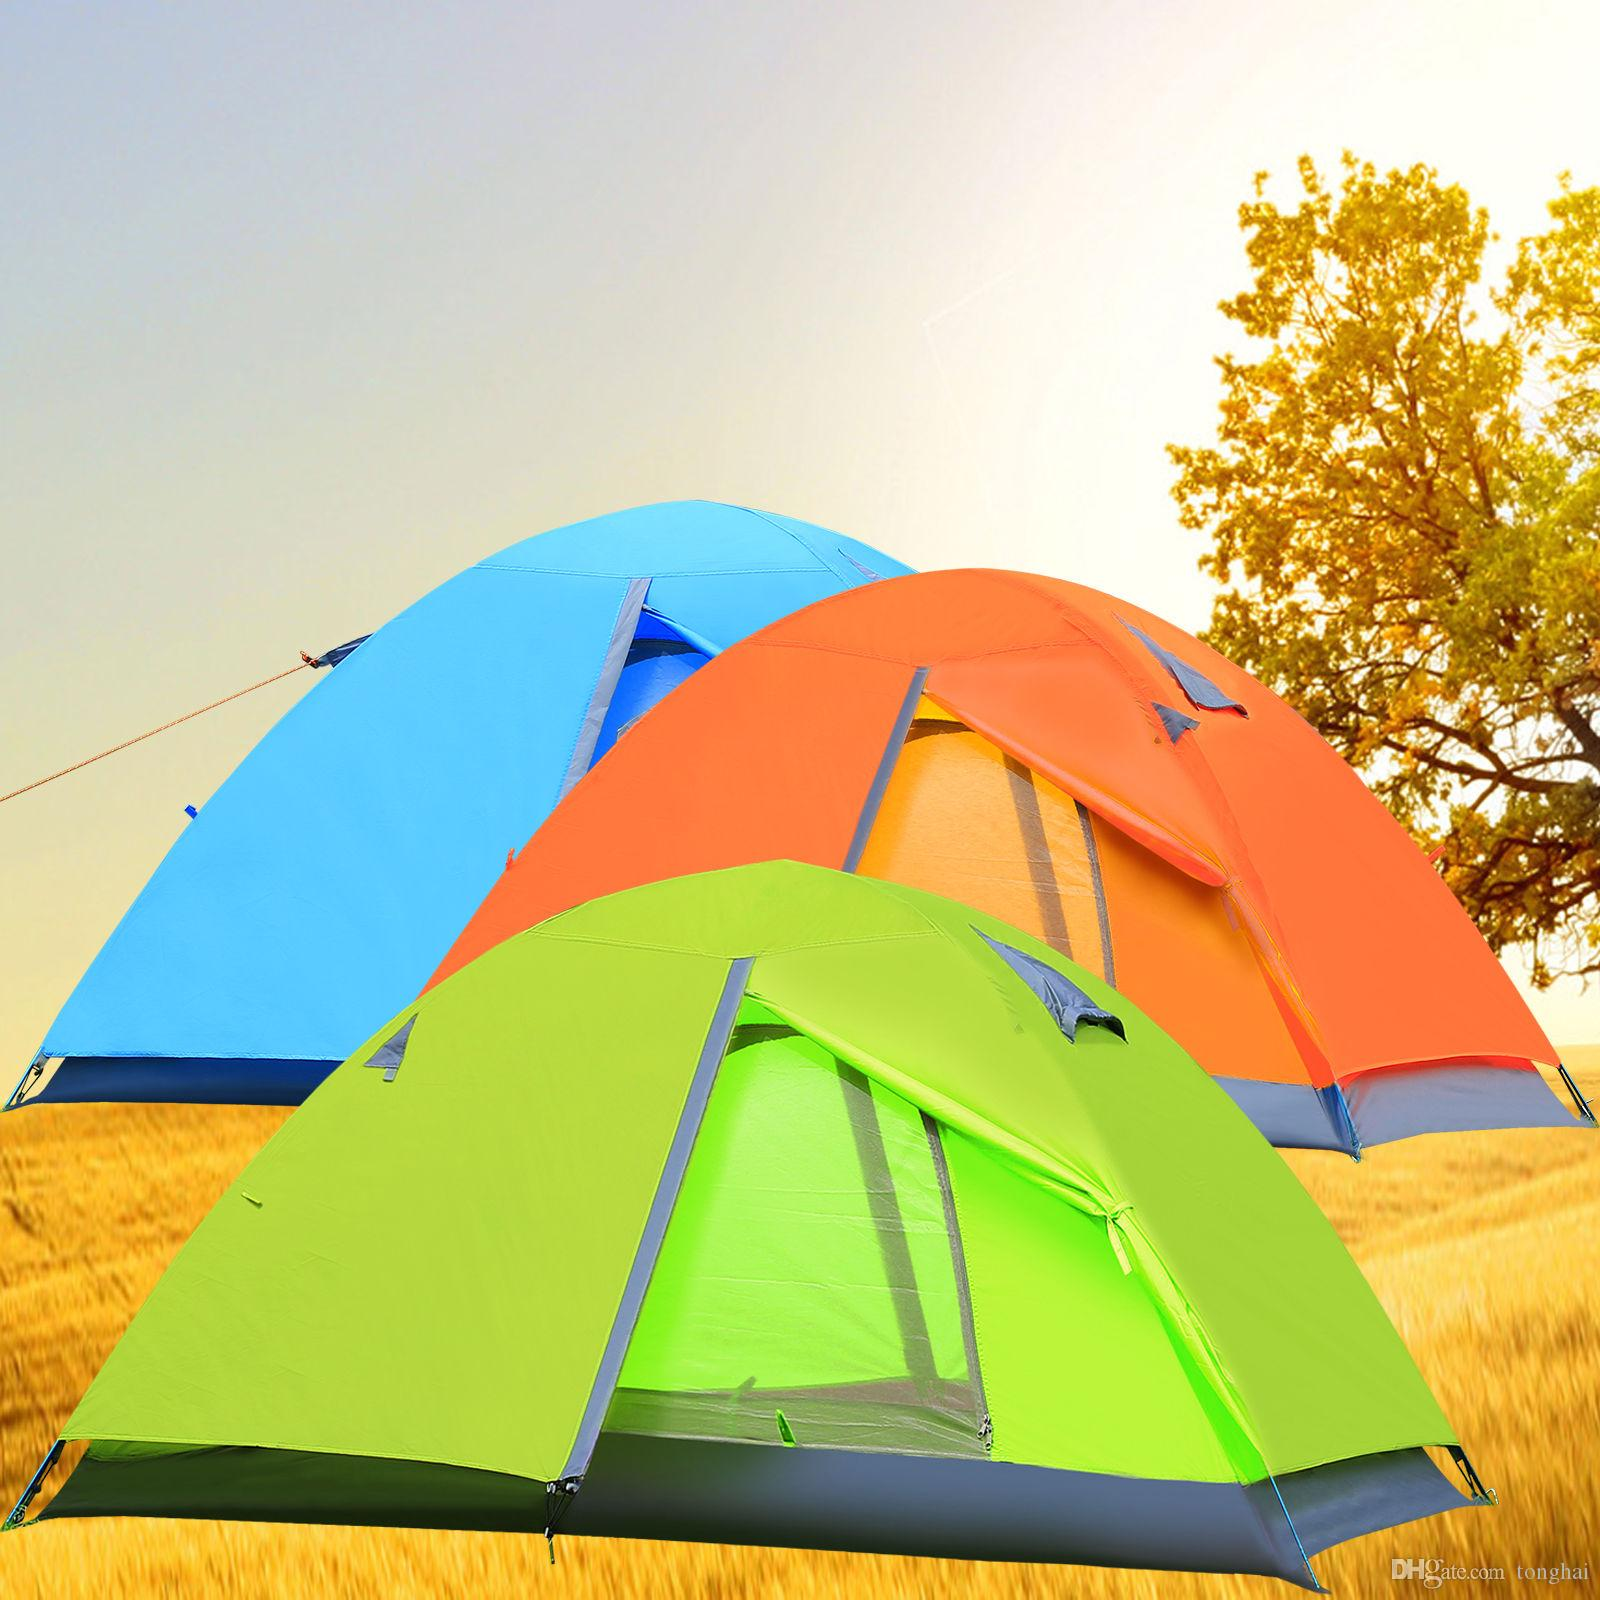 2 Person Hiking Dome Tent Outdoor Double Skin C&ing Tents 4 Season Double-wall Blueorange Light Green 2 Person Tent Double Skin Automatic Folding Online ...  sc 1 st  DHgate.com & 2 Person Hiking Dome Tent Outdoor Double Skin Camping Tents 4 ...